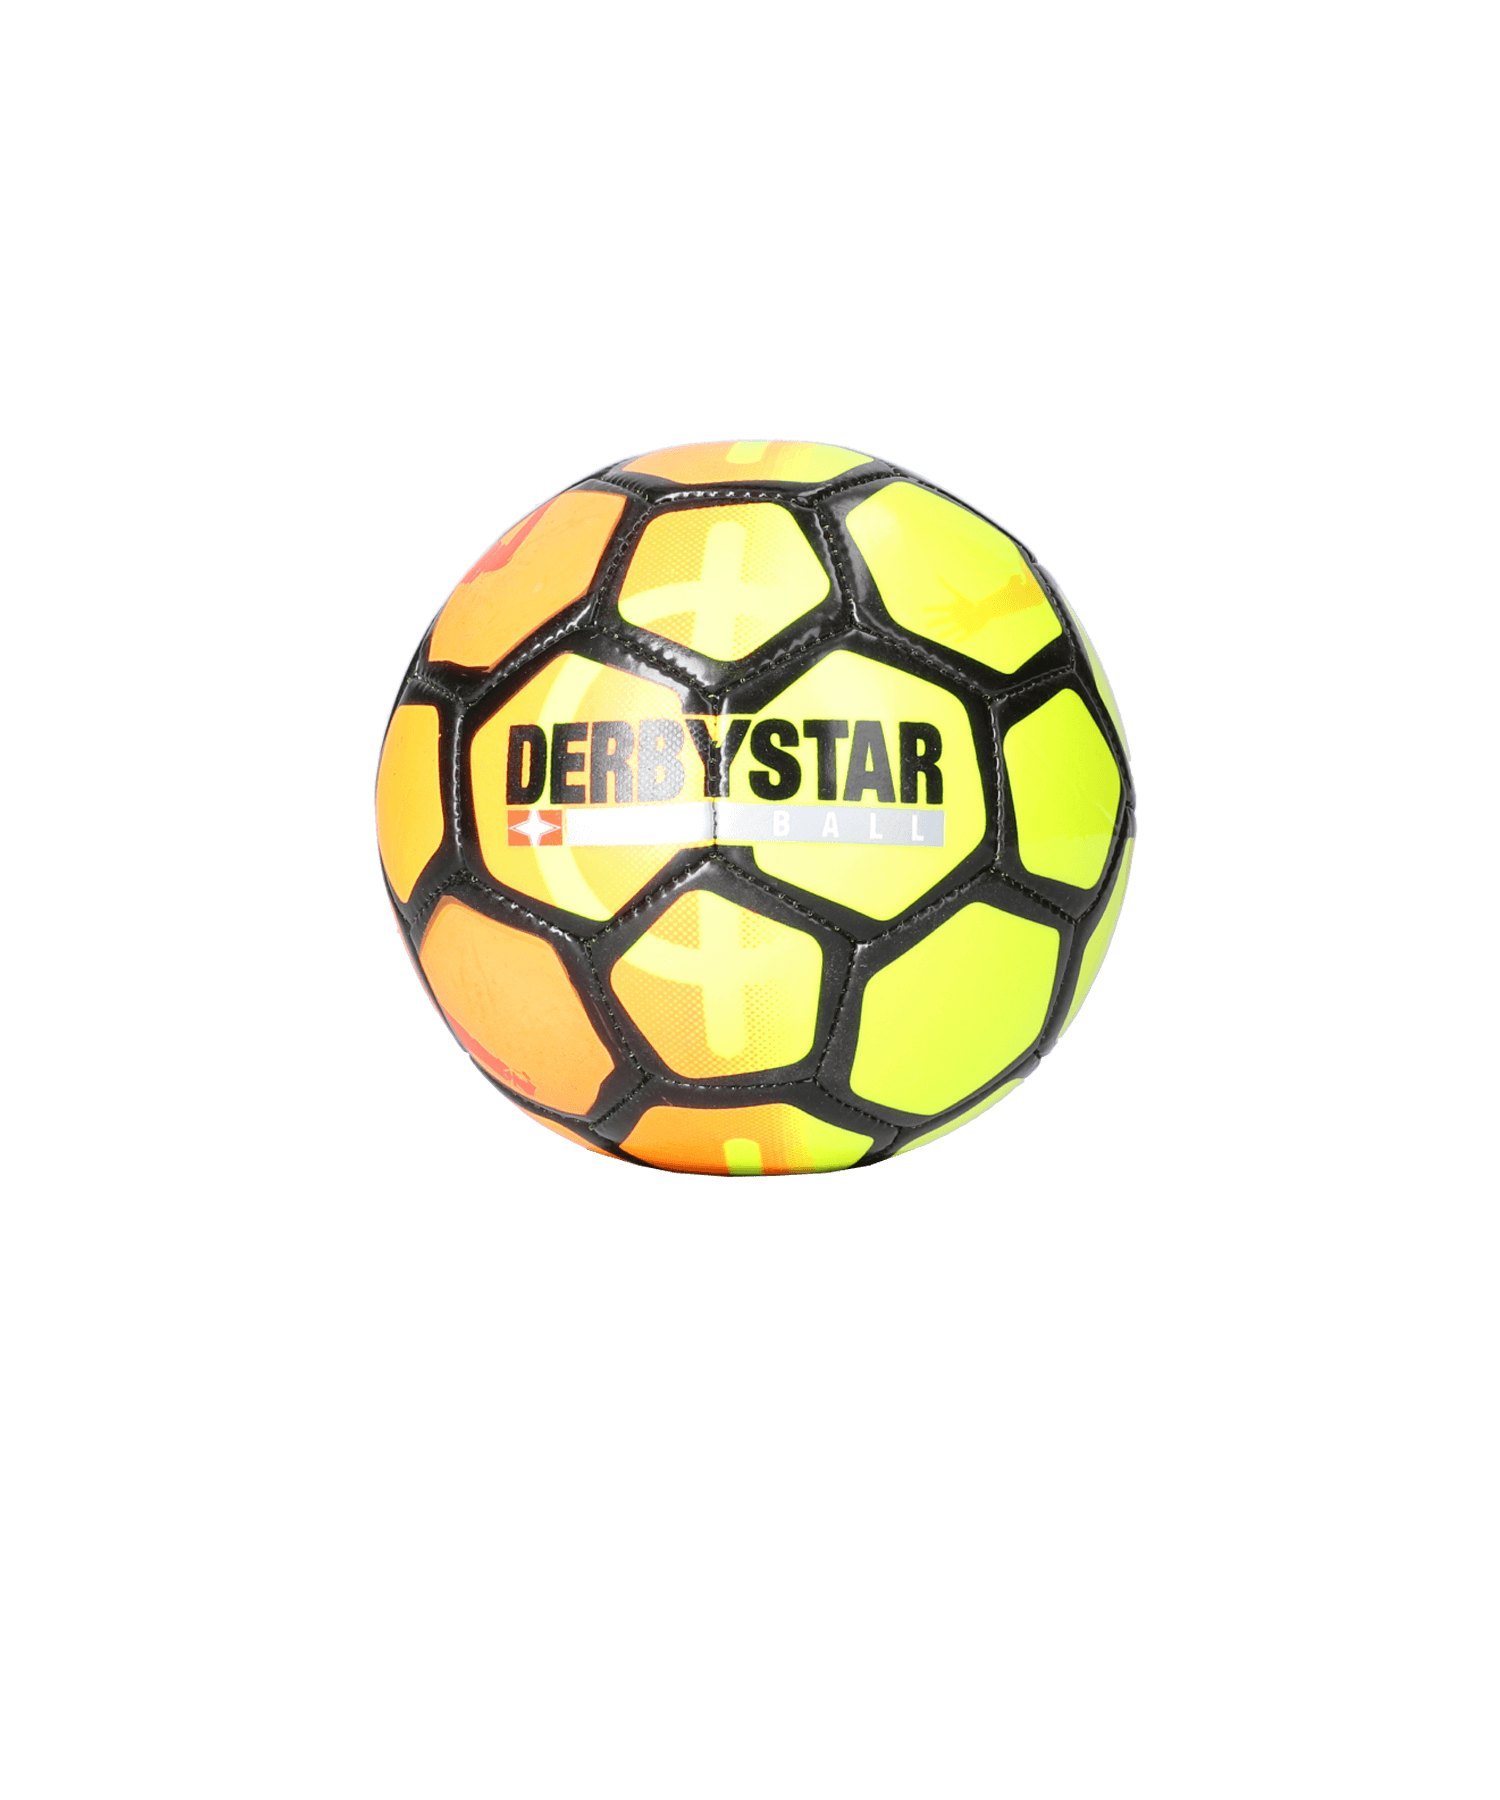 Derbystar Minifussball Street Soccer Orange F752 - orange